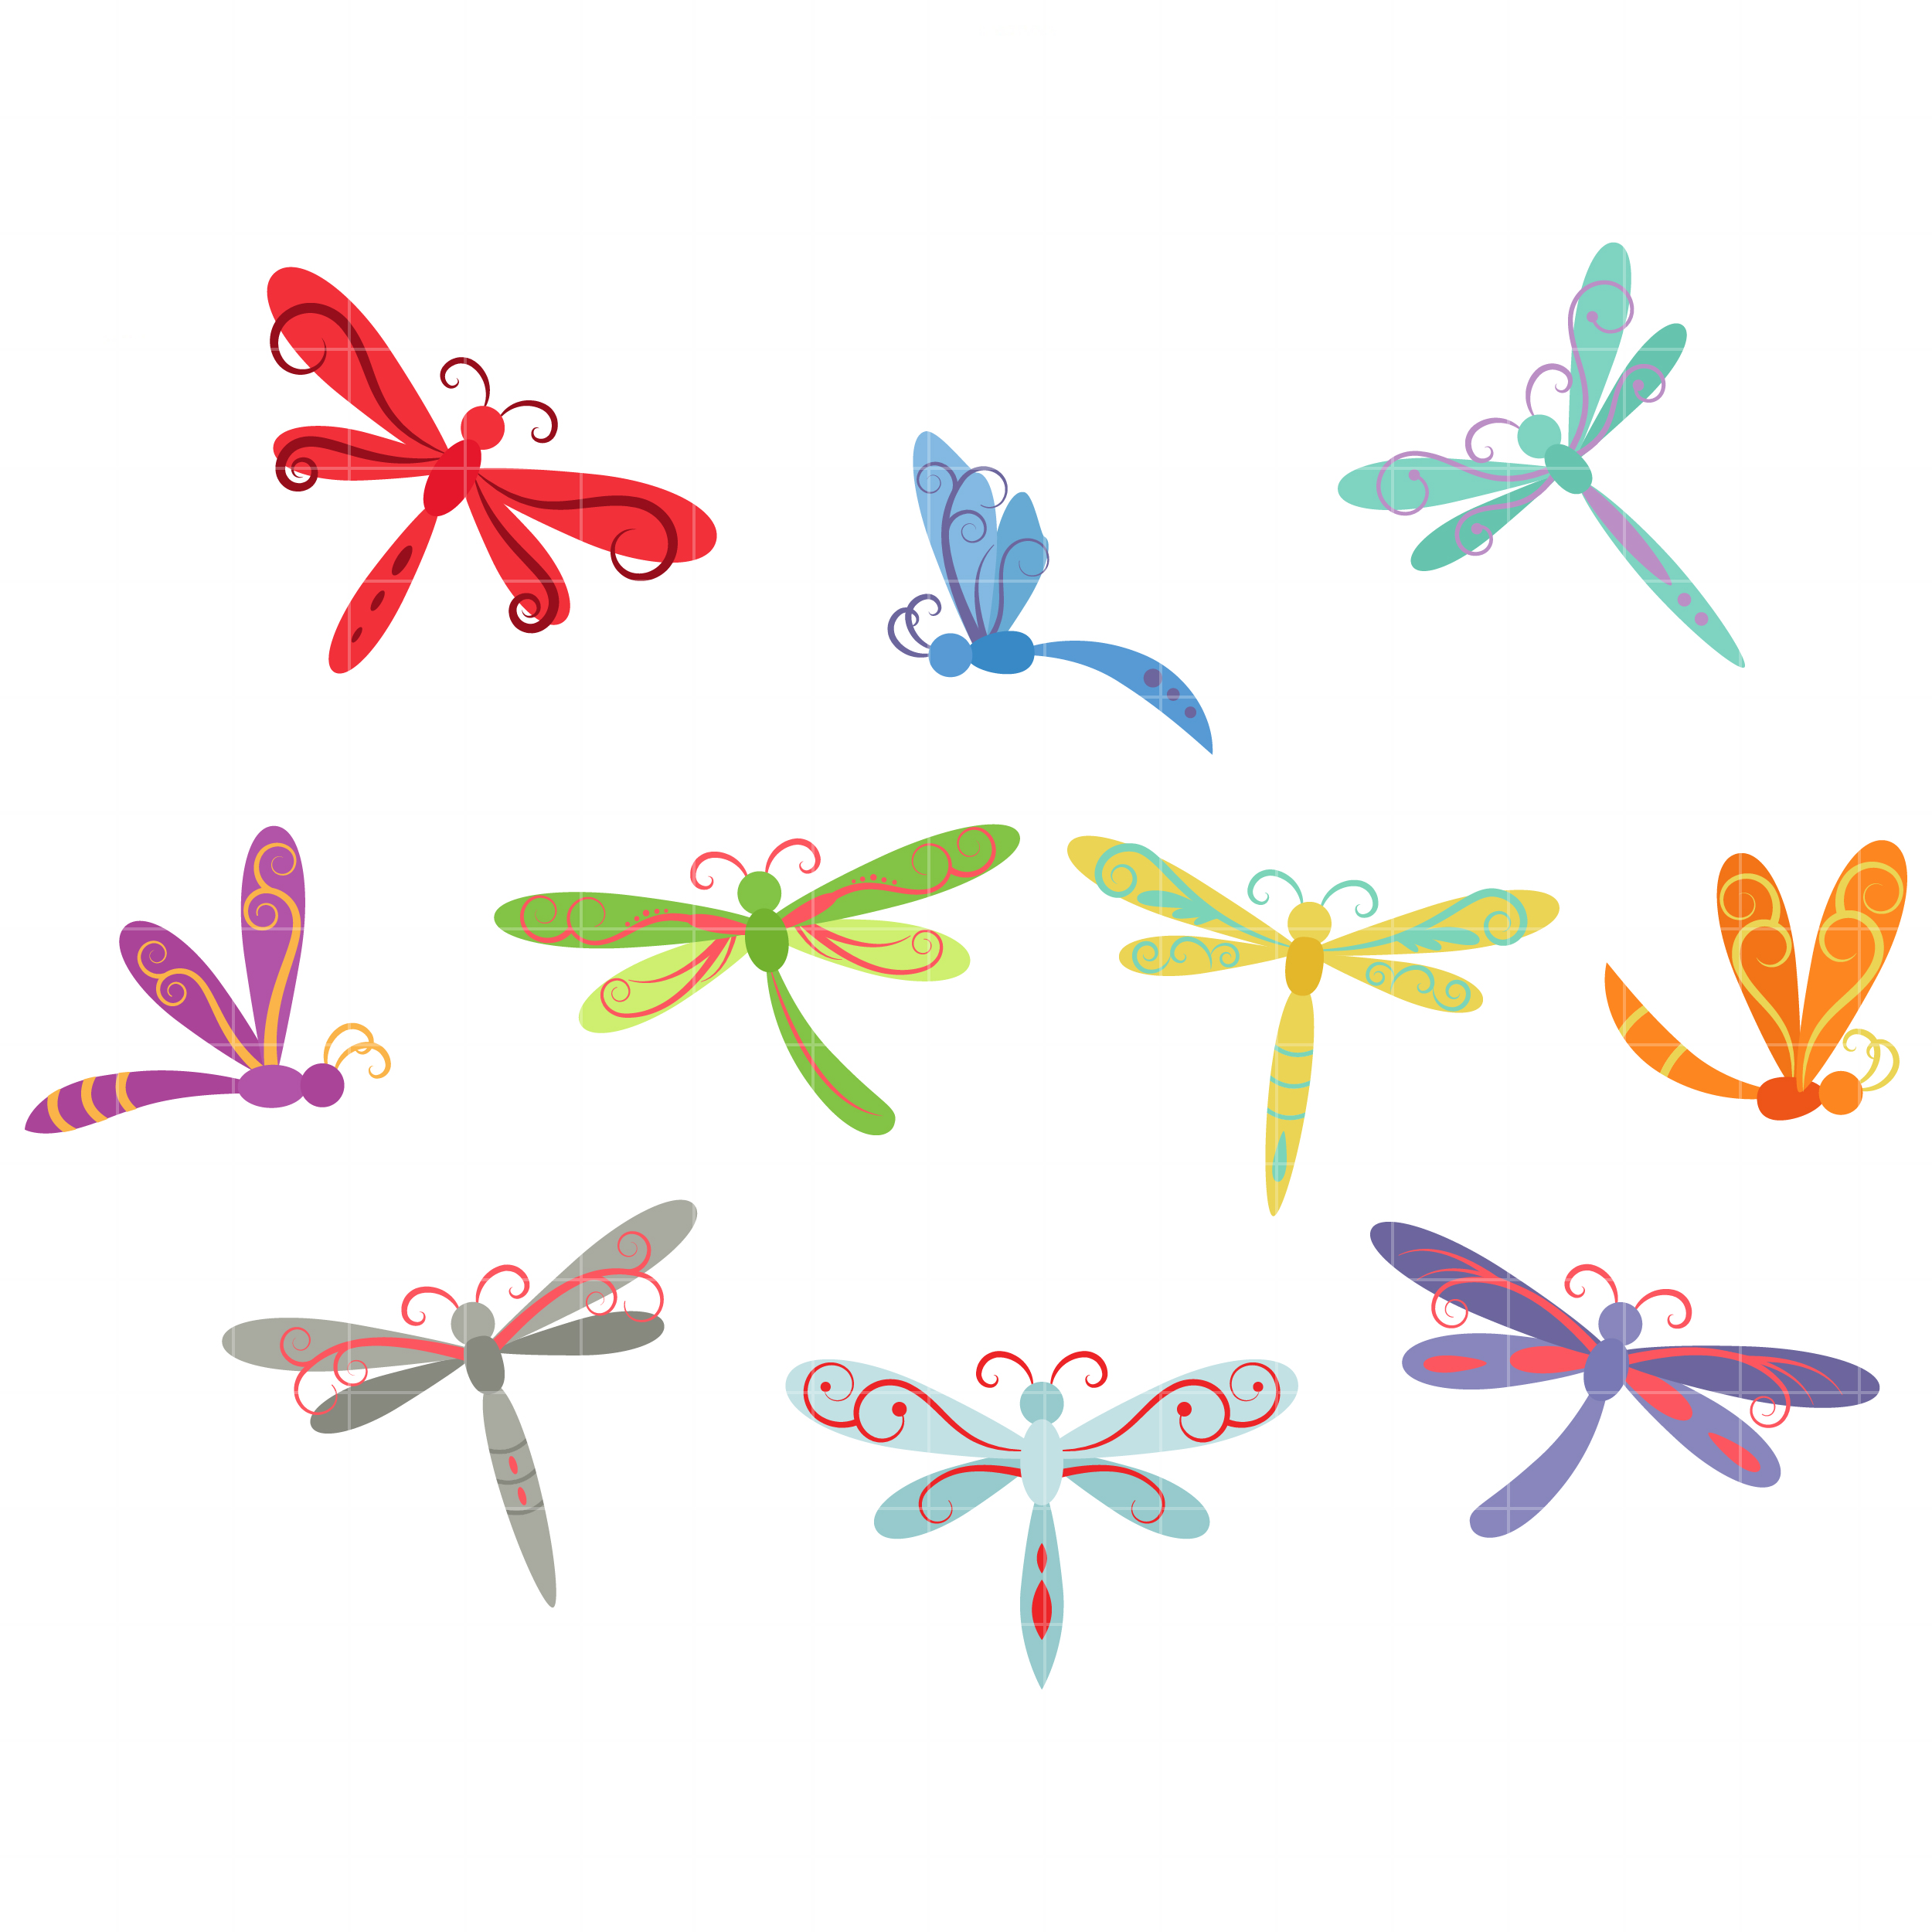 Cute cartoon dragonfly clipart free clip art image image. Whimsical Clip Art